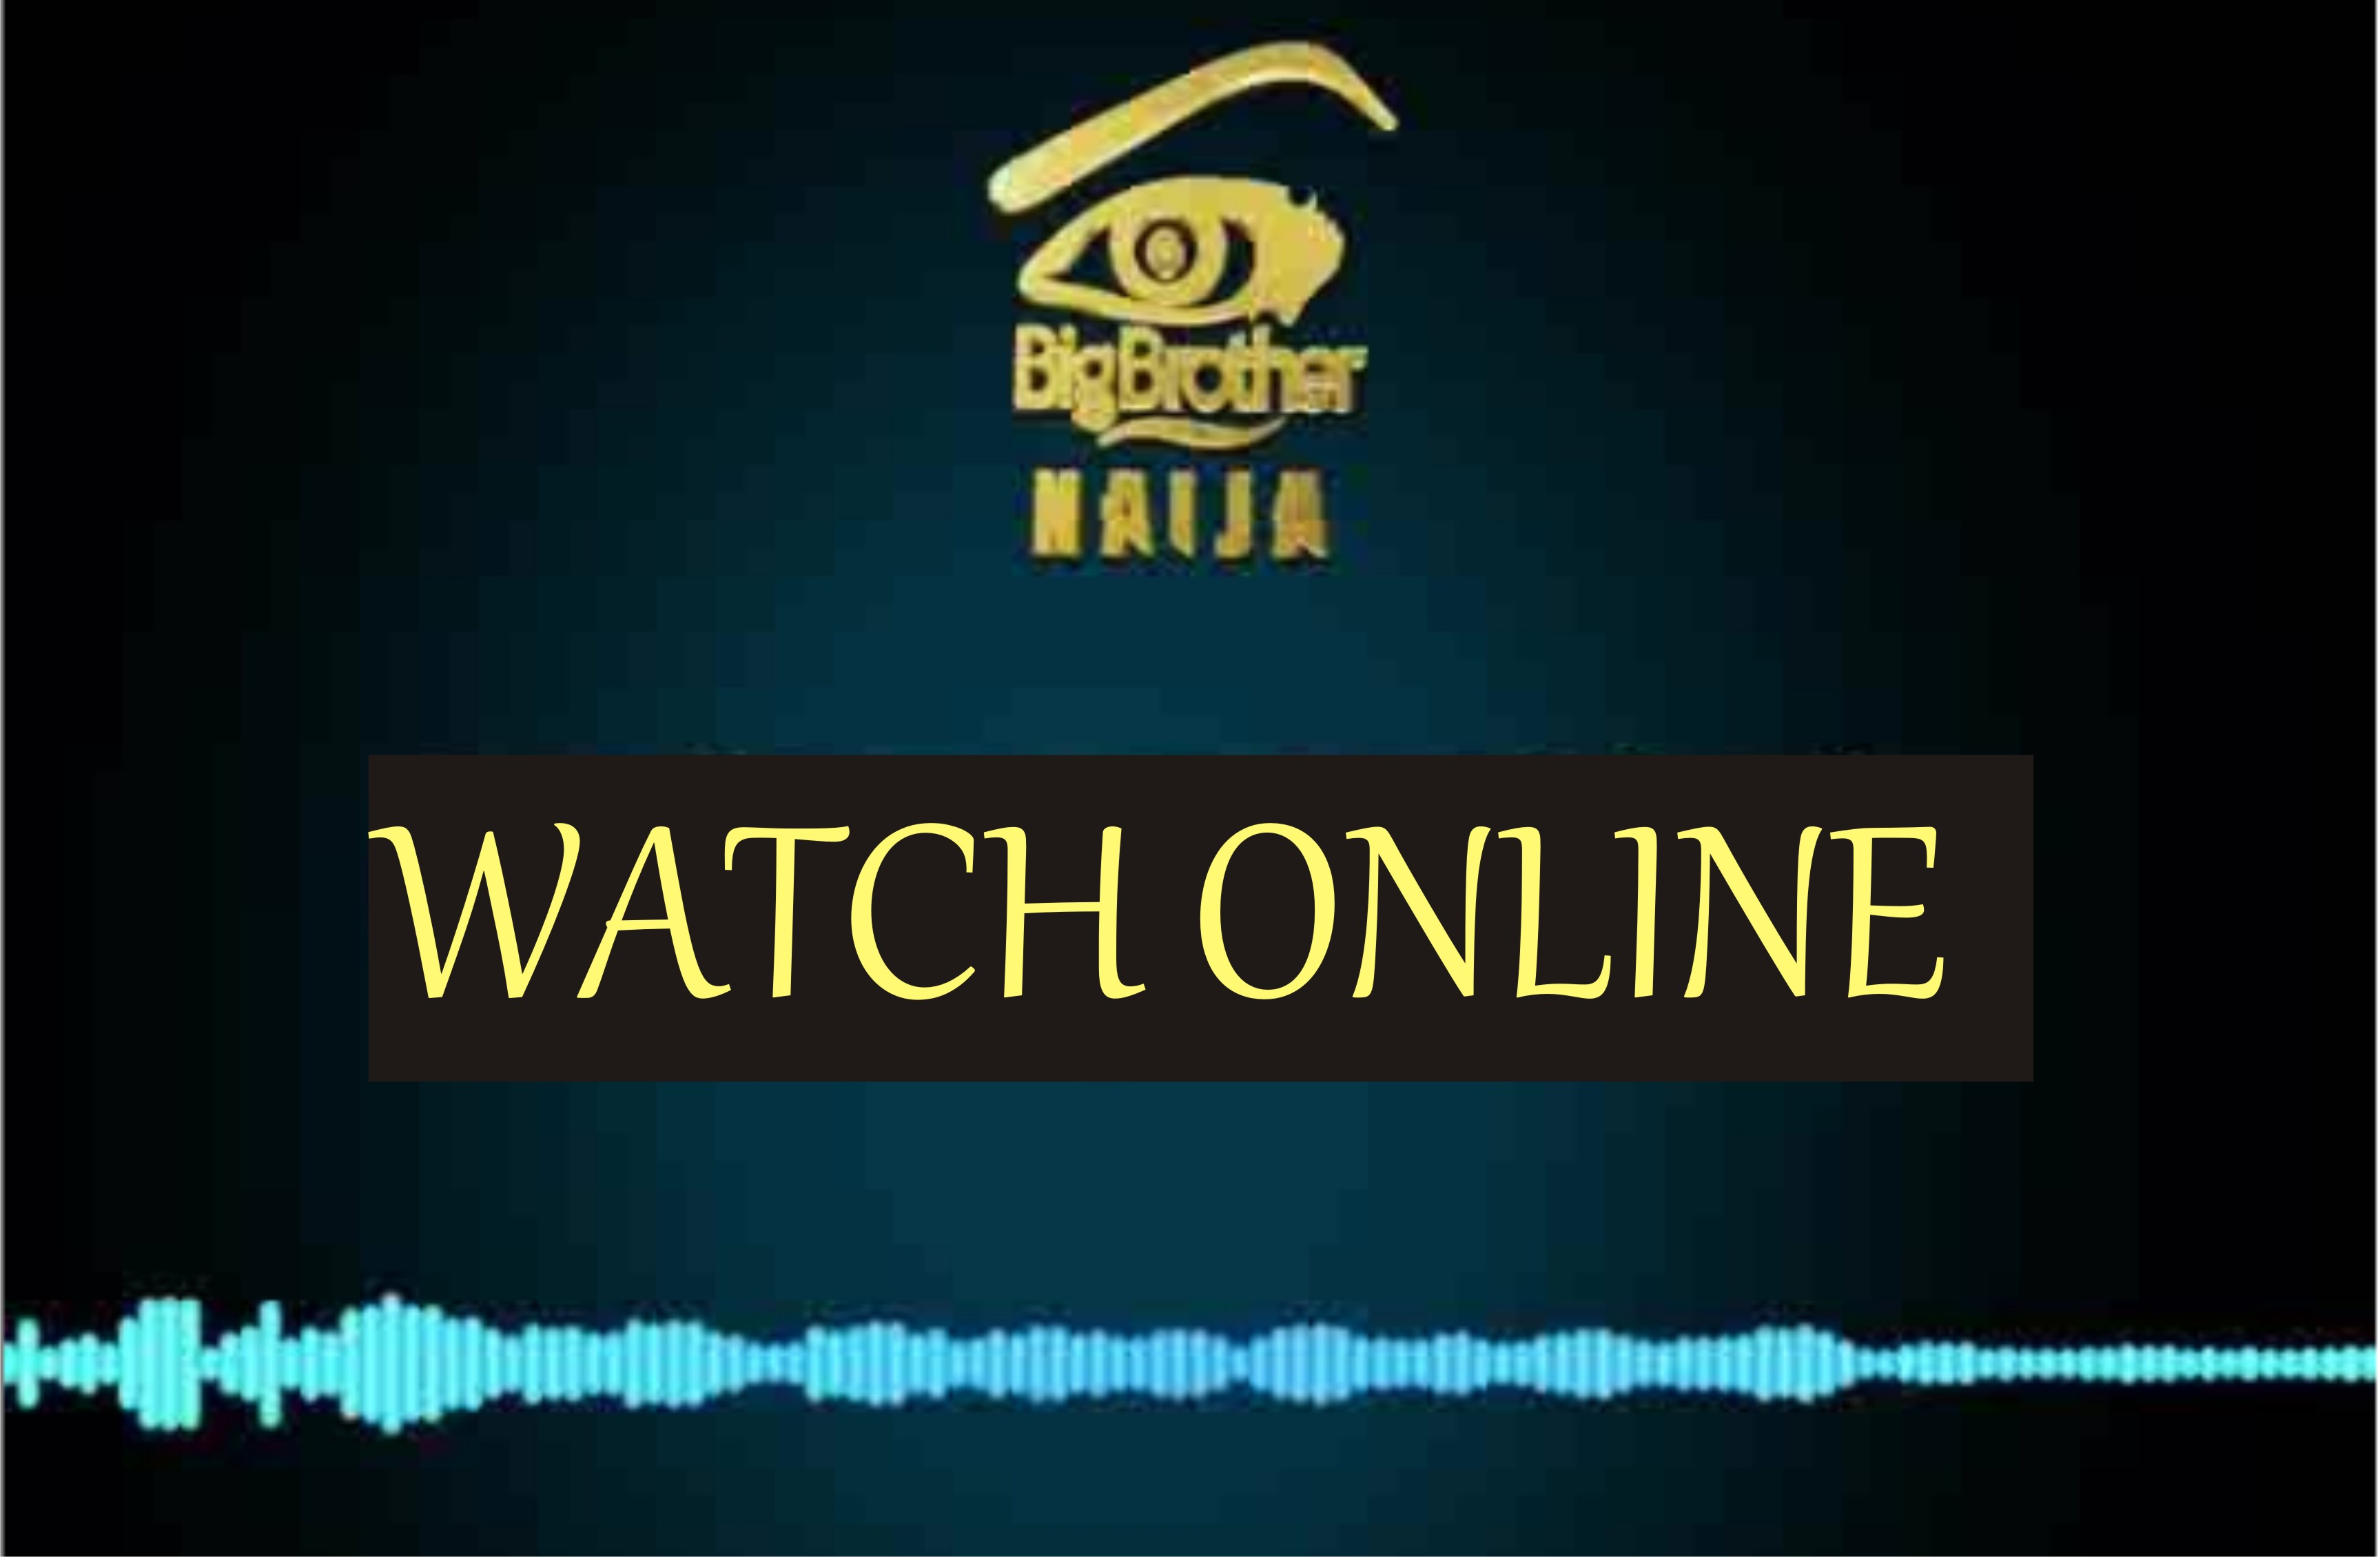 How to Watch Big Brother Nigeria 2019 Online for Free